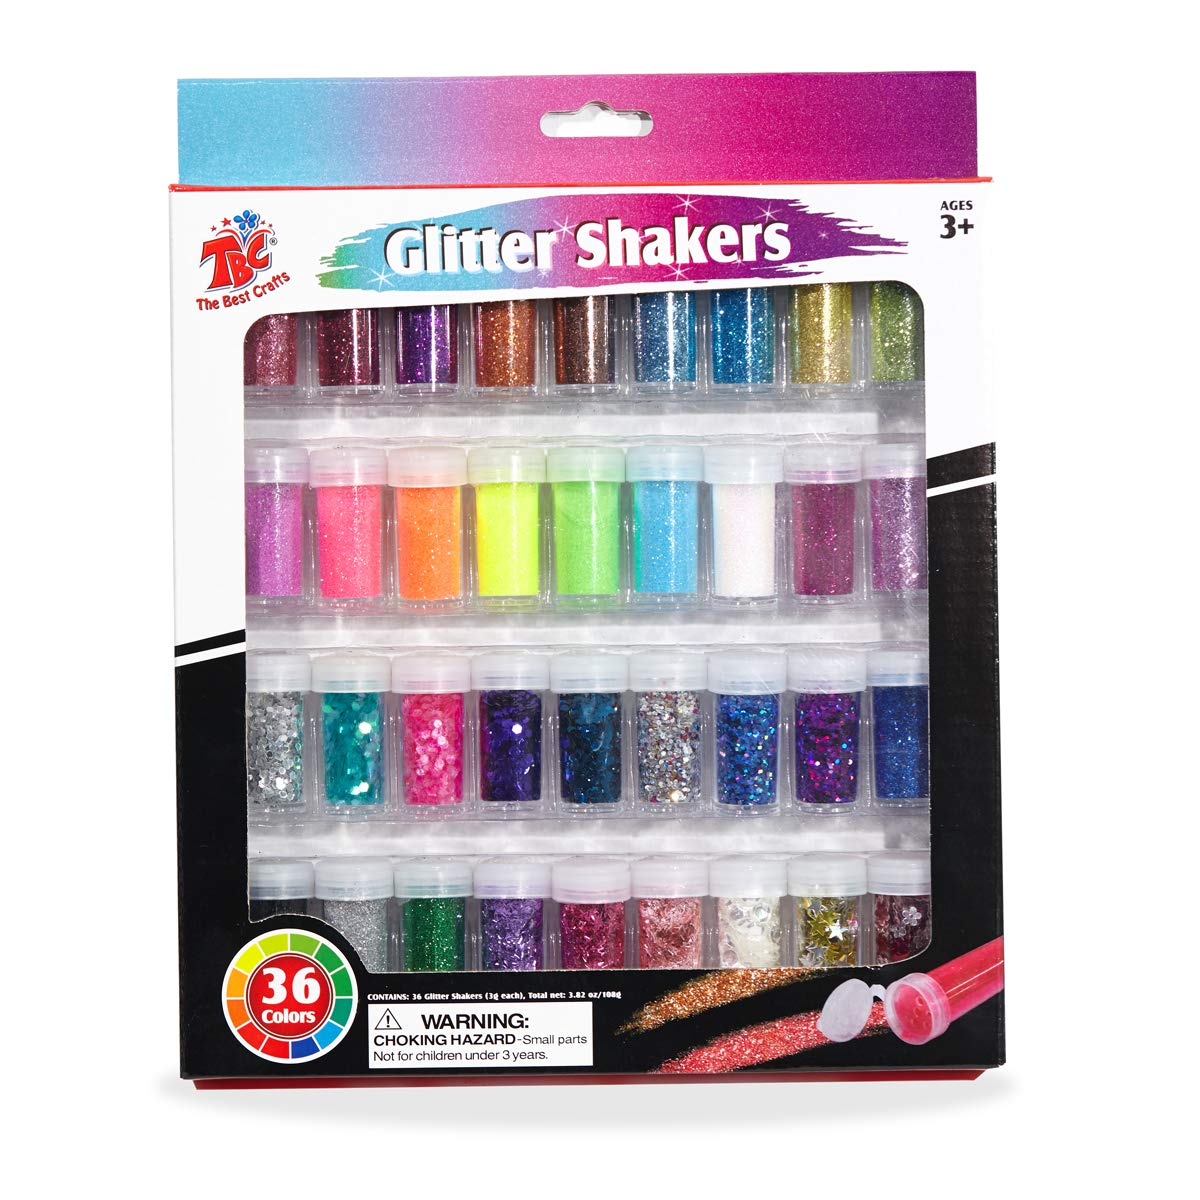 36 Glitter Shaker Jar Set, Extra Fine/Metallic Sparkling Strips/Holographic Cosmetic/Sequins Paillette/Confetti Shapes Glitter for Slime, Arts & Crafts Supplies